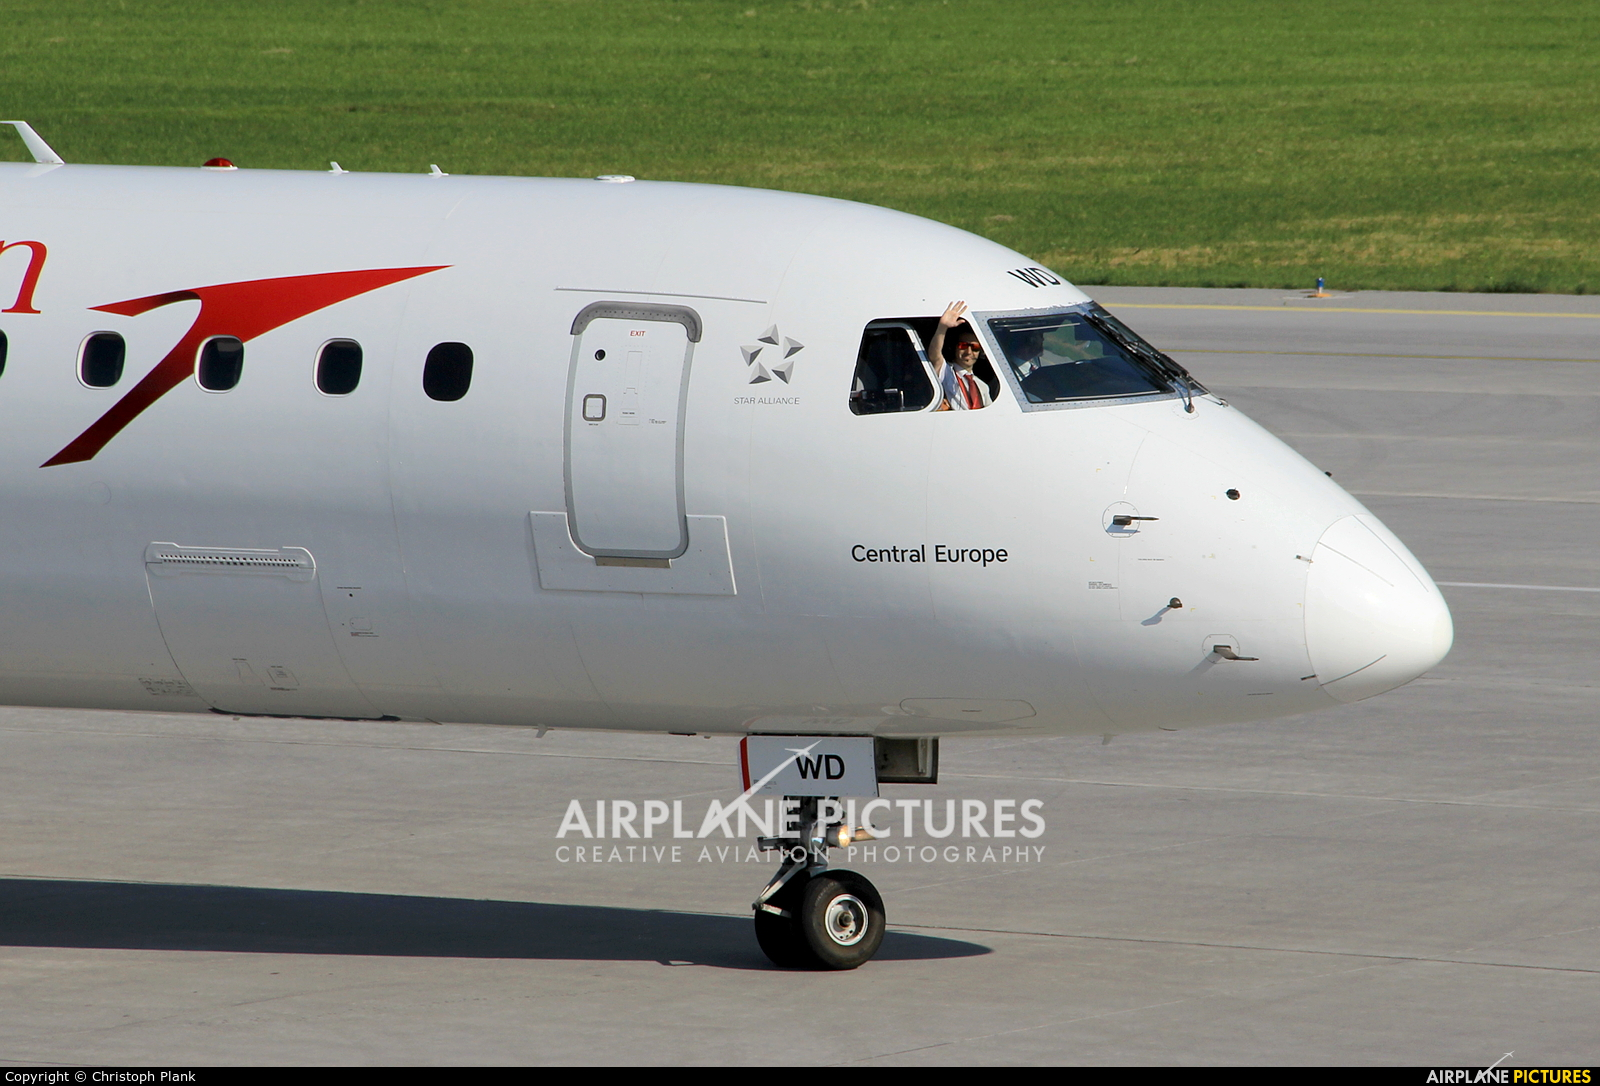 Austrian Airlines/Arrows/Tyrolean OE-LWD aircraft at Innsbruck